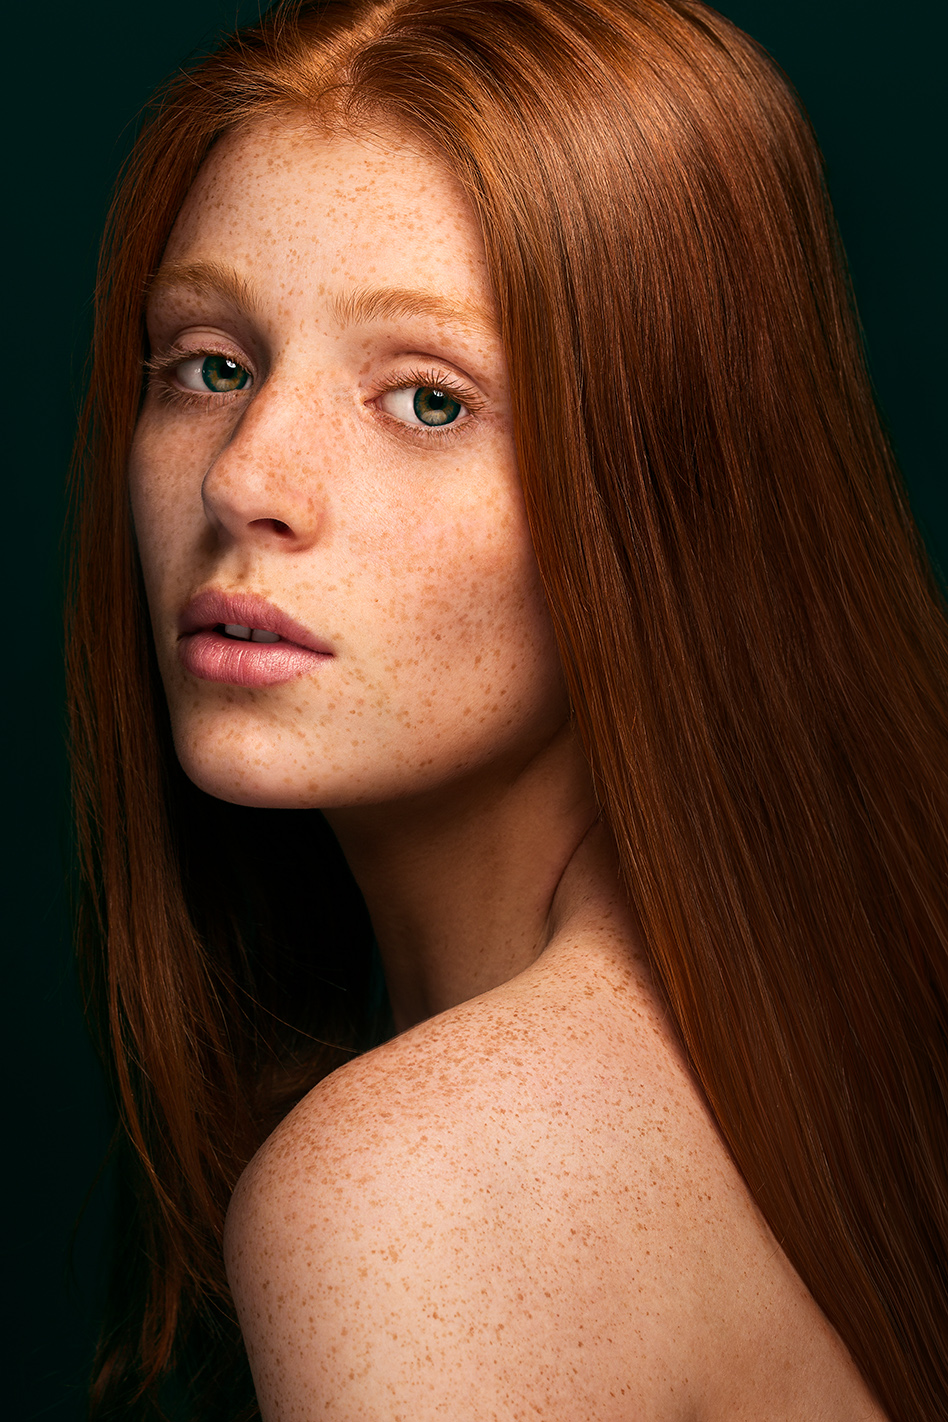 frecklehairs-lindsay-adler-photography-EE8A6503_948